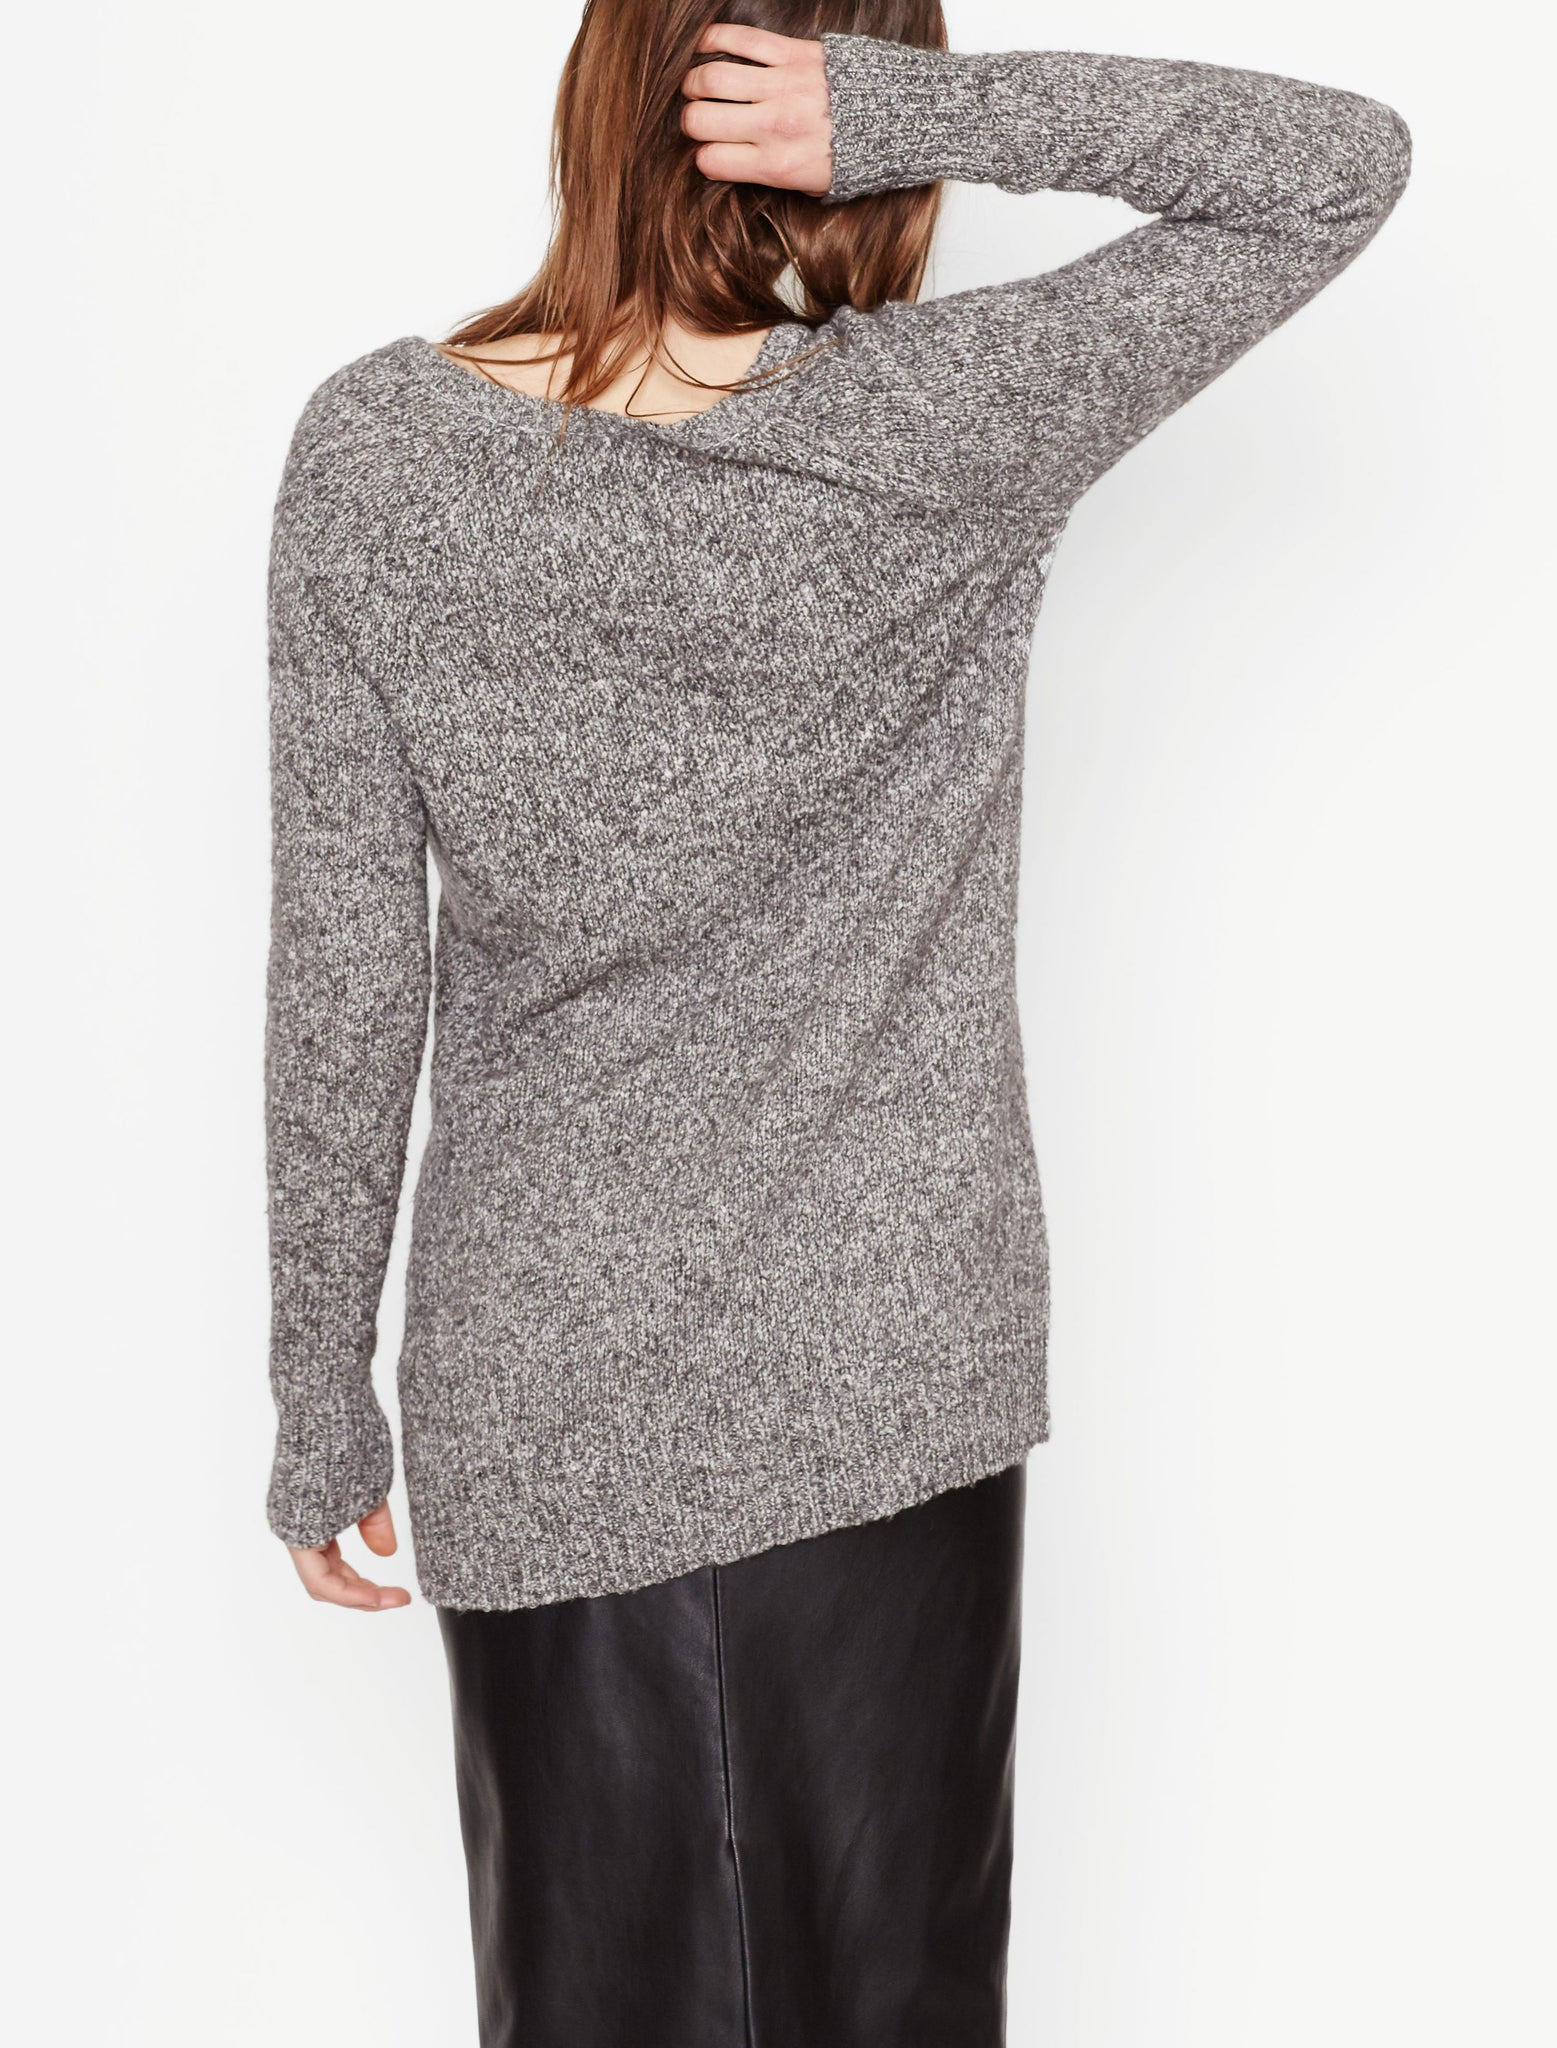 Asher V-Neck Sweater in Heather Grey Multi